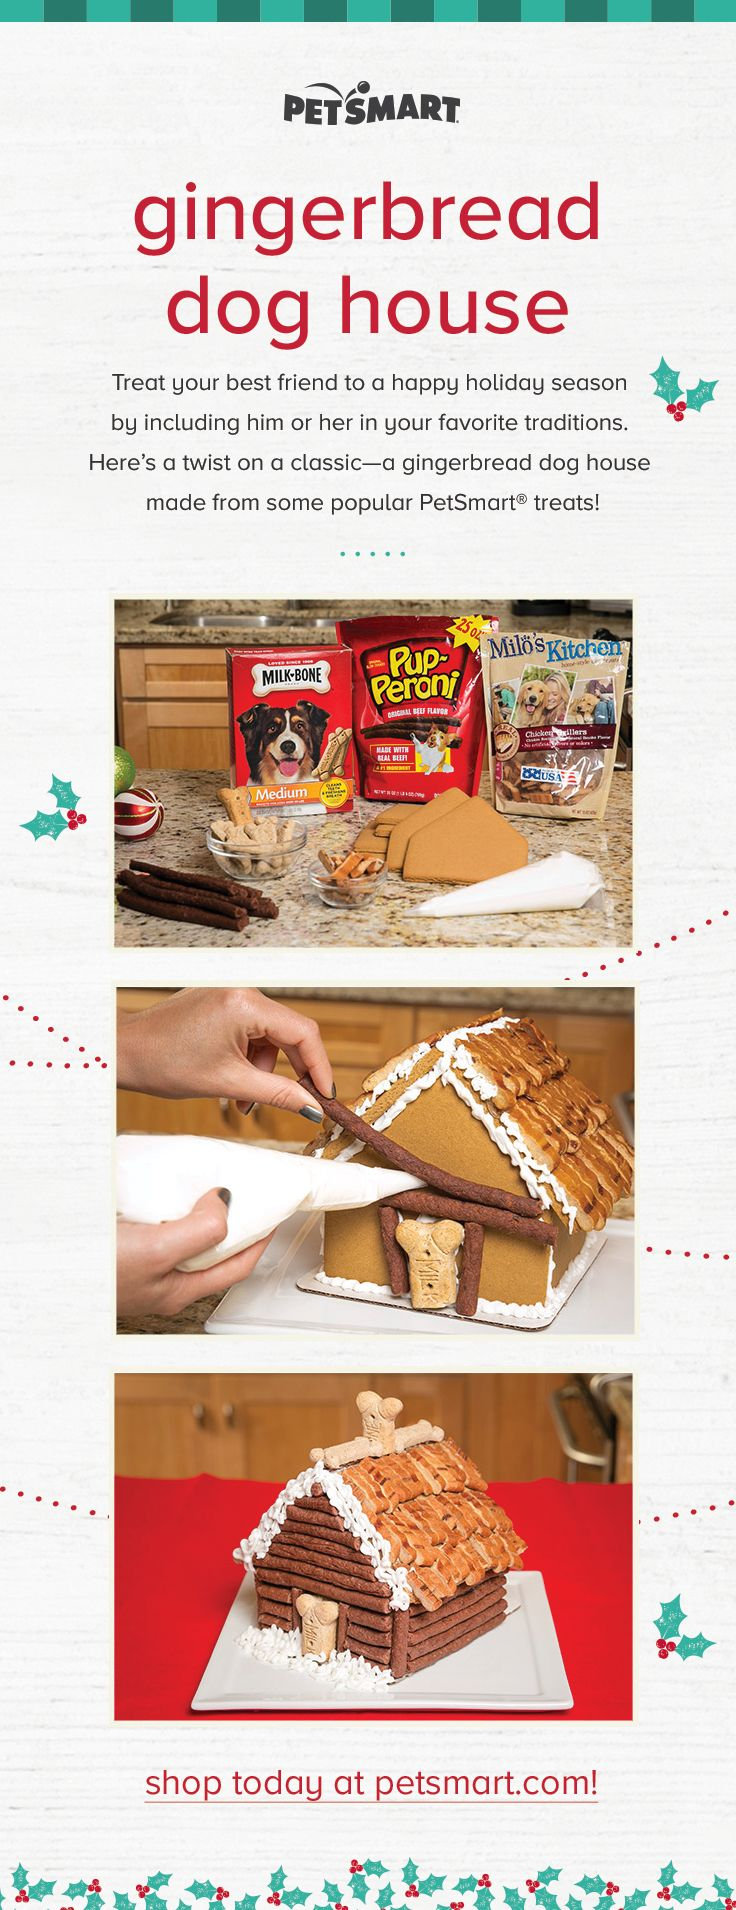 Treat your best friend to a happy holiday season by including him or her in your favorite traditions. Here's a twist on a classic—a gingerbread dog house made from some popular PetSmart® treats!